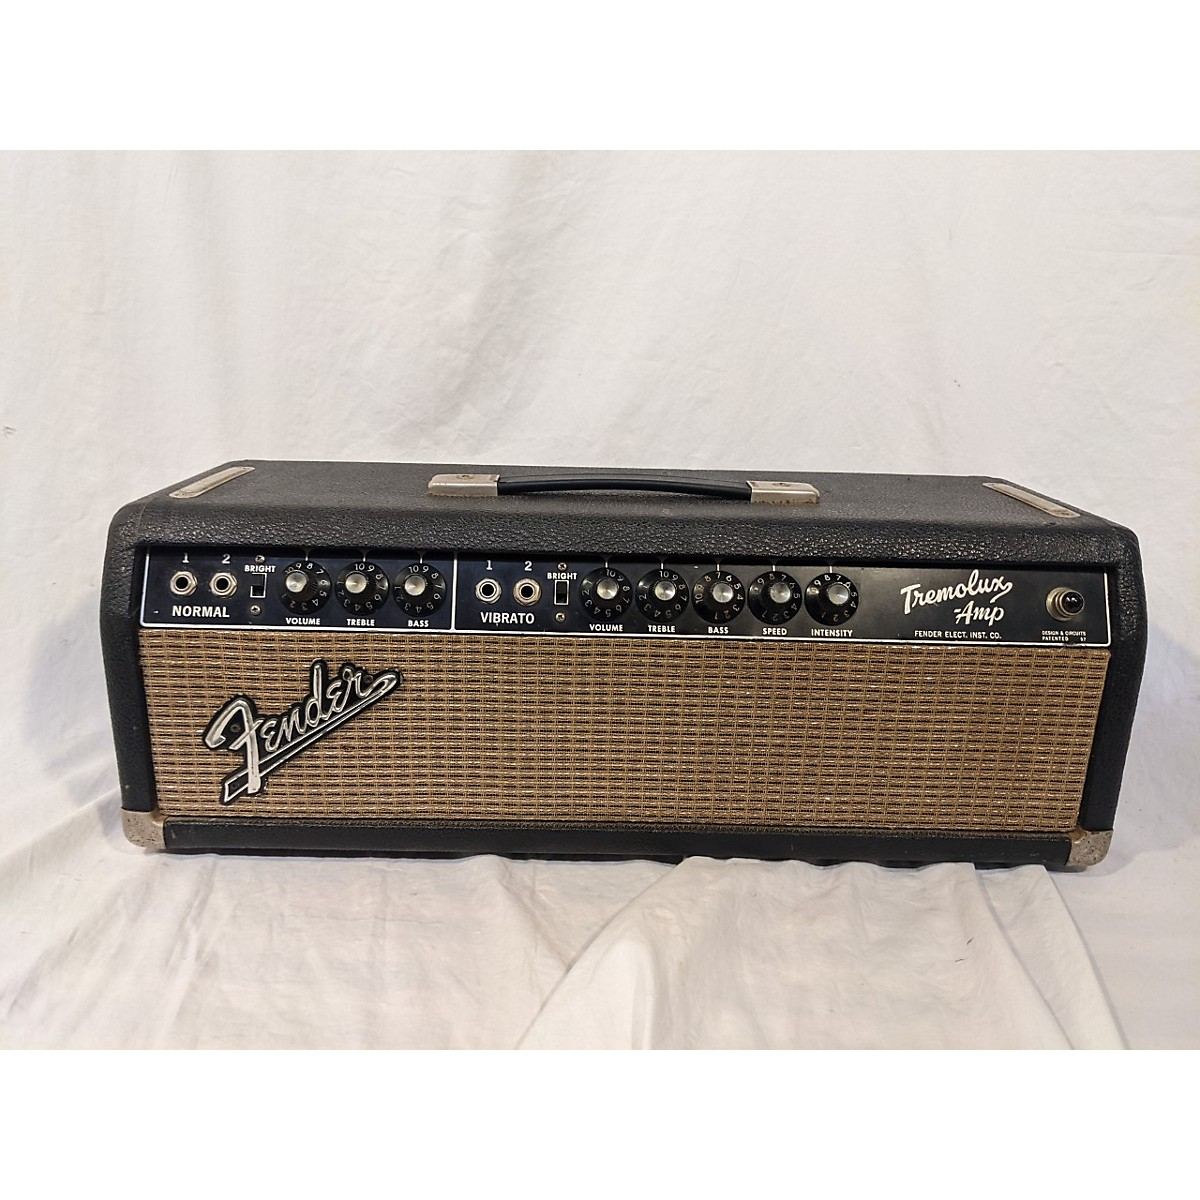 Fender 1964 Tremolux W/ Matching 2x10 Cab (non-Original Speakers) Tube Guitar Amp Head